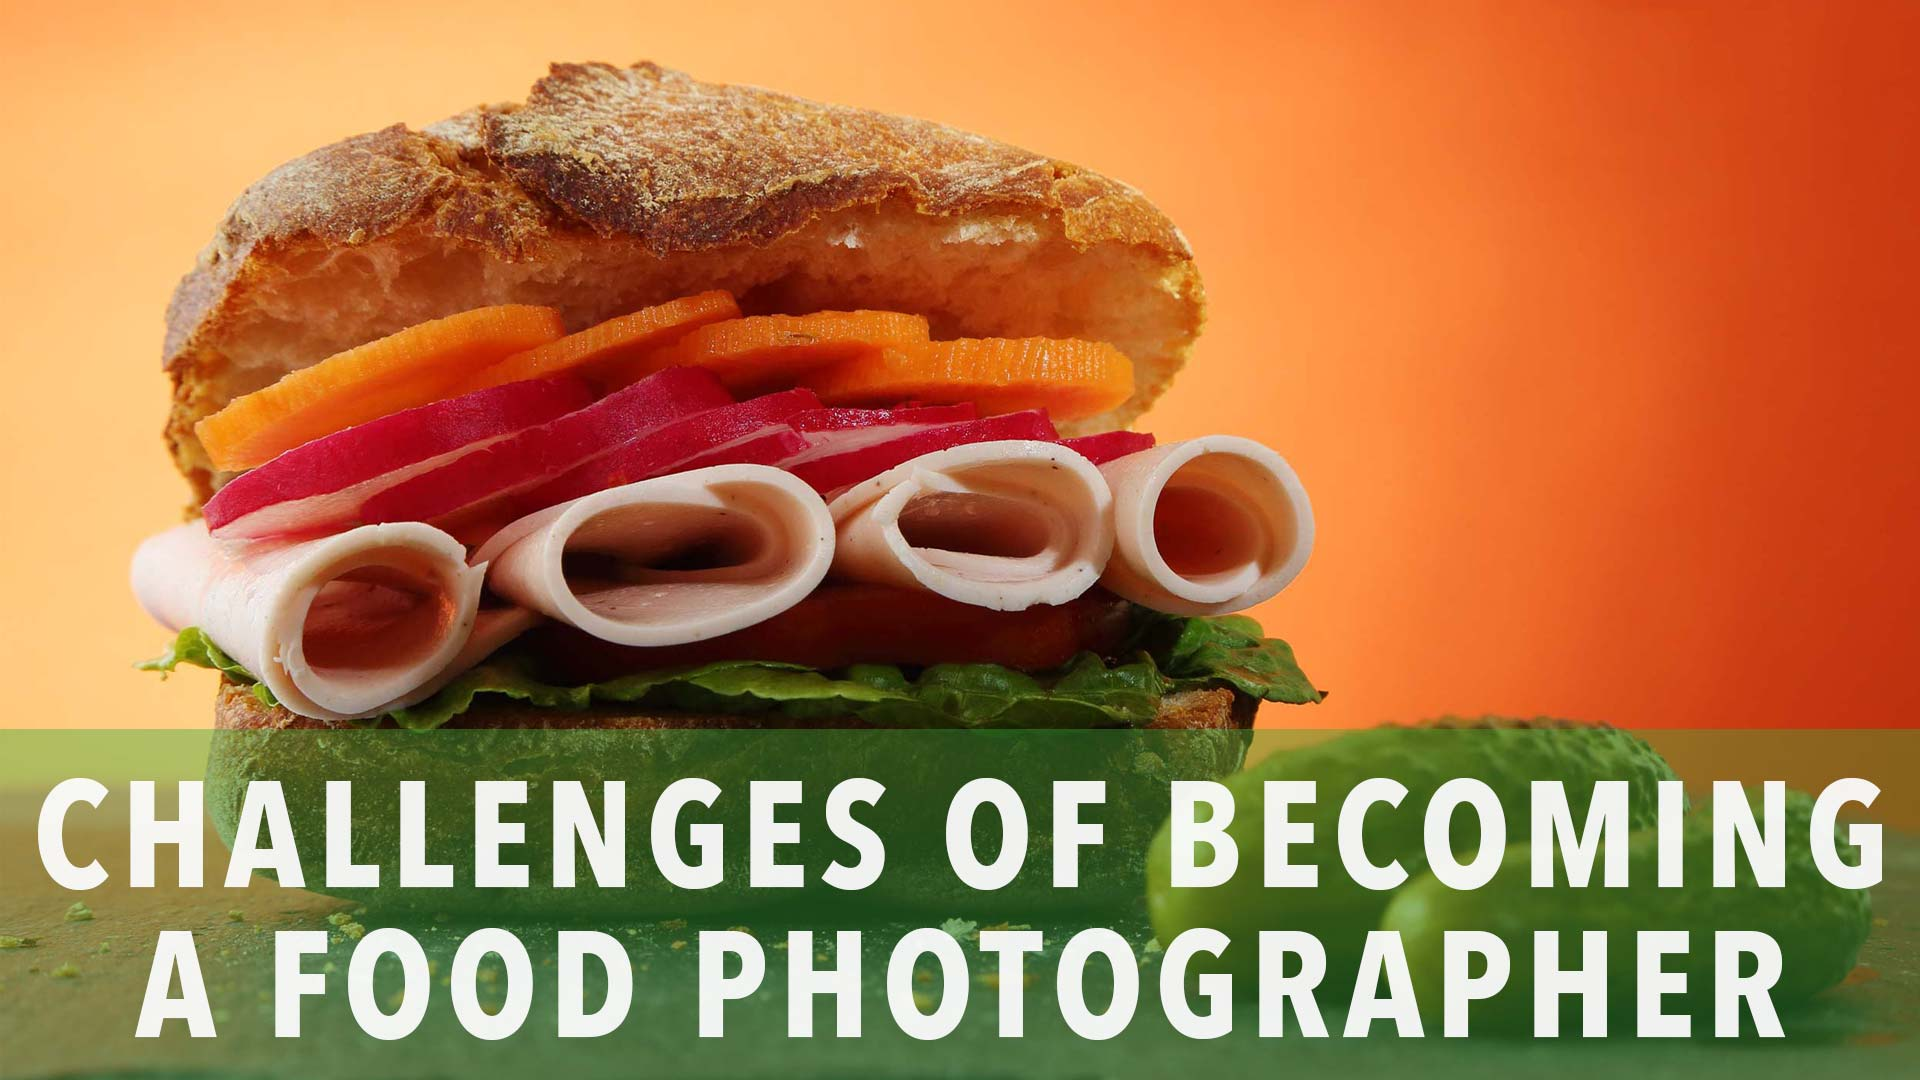 The challenges to become a food photographer